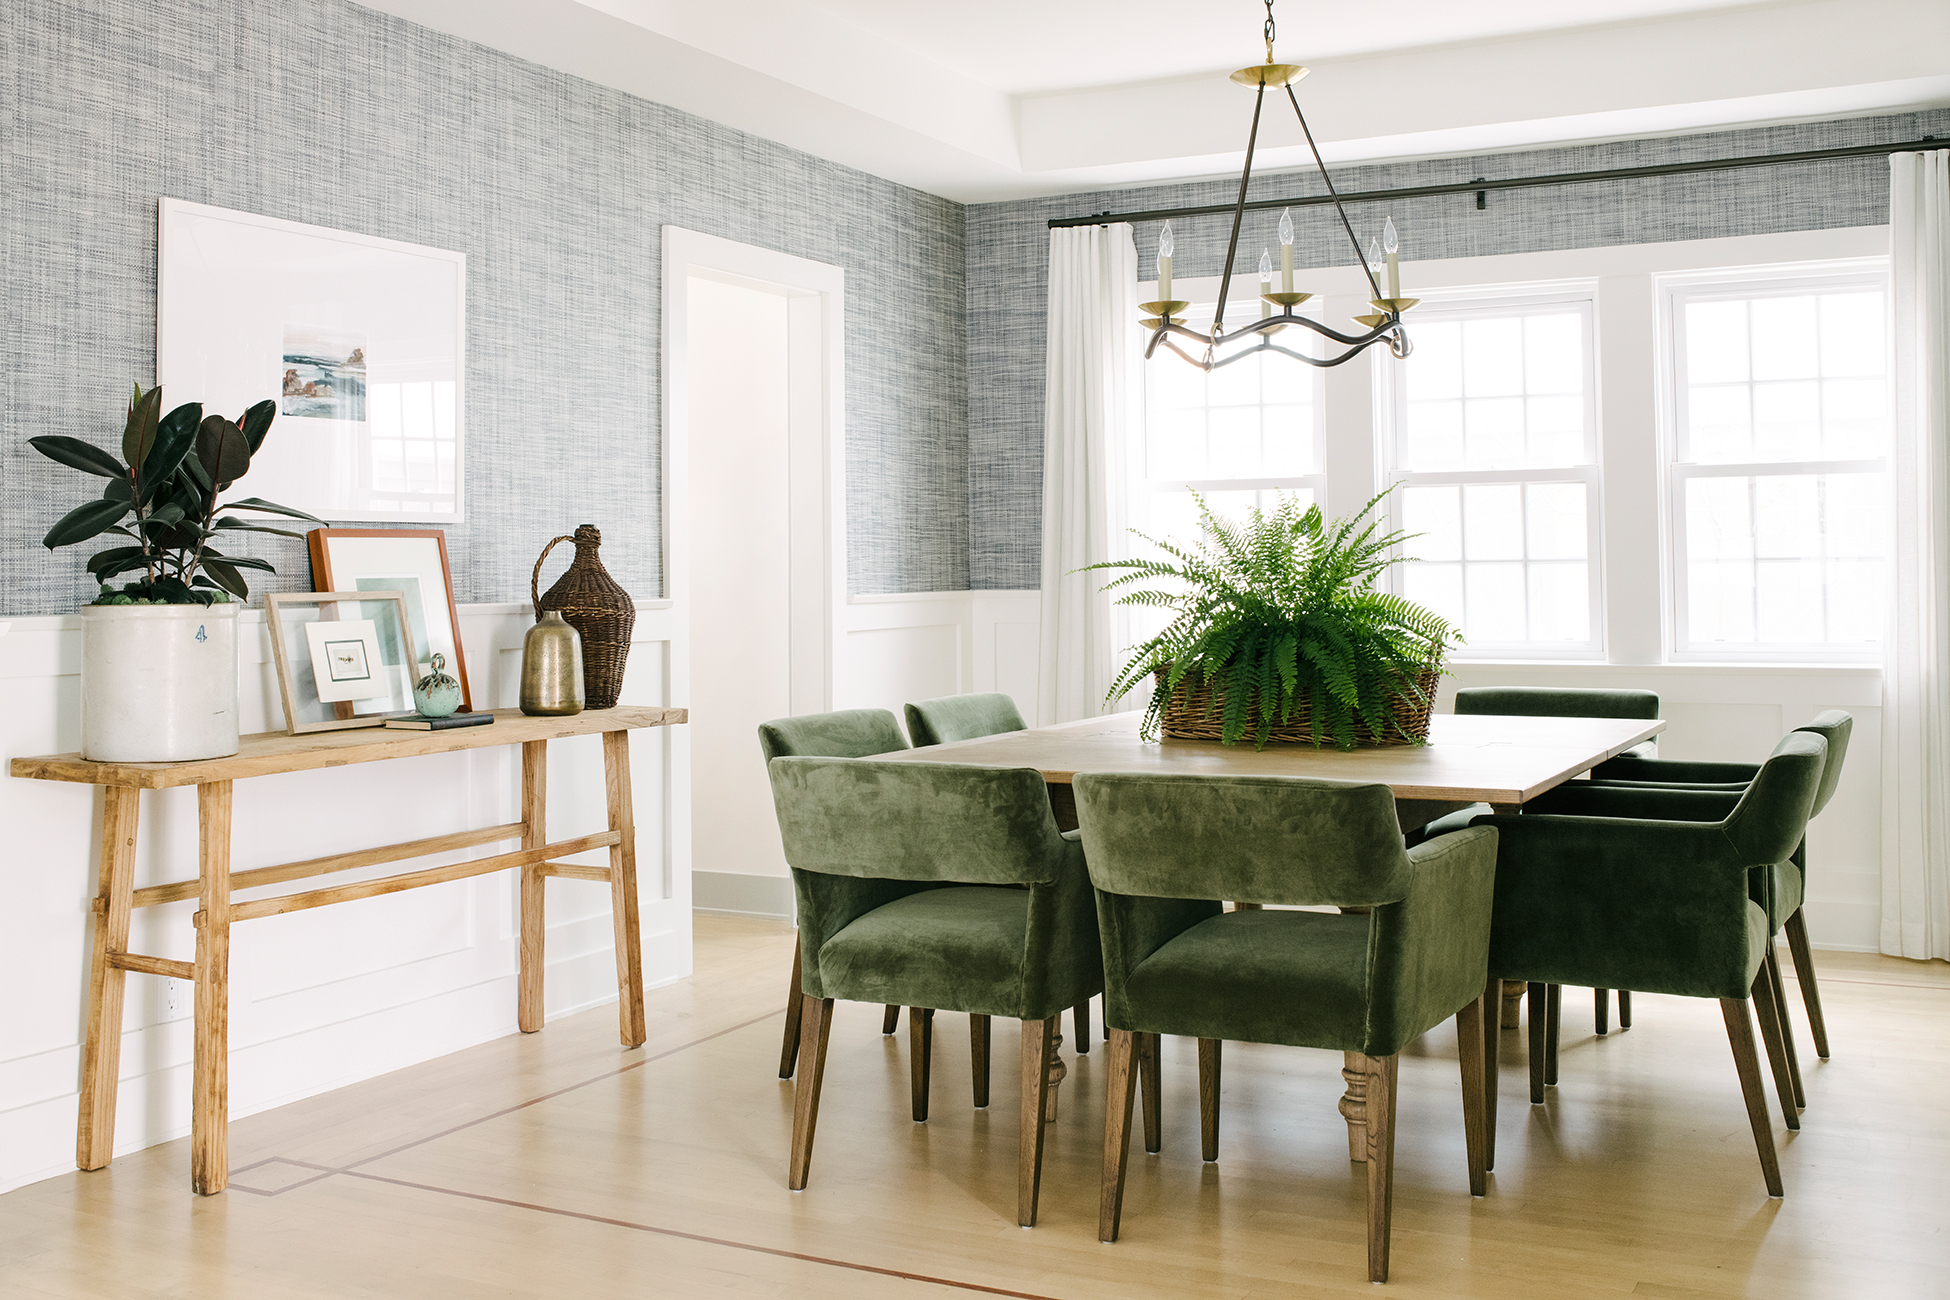 southern california house comfortable dining room with green chairs